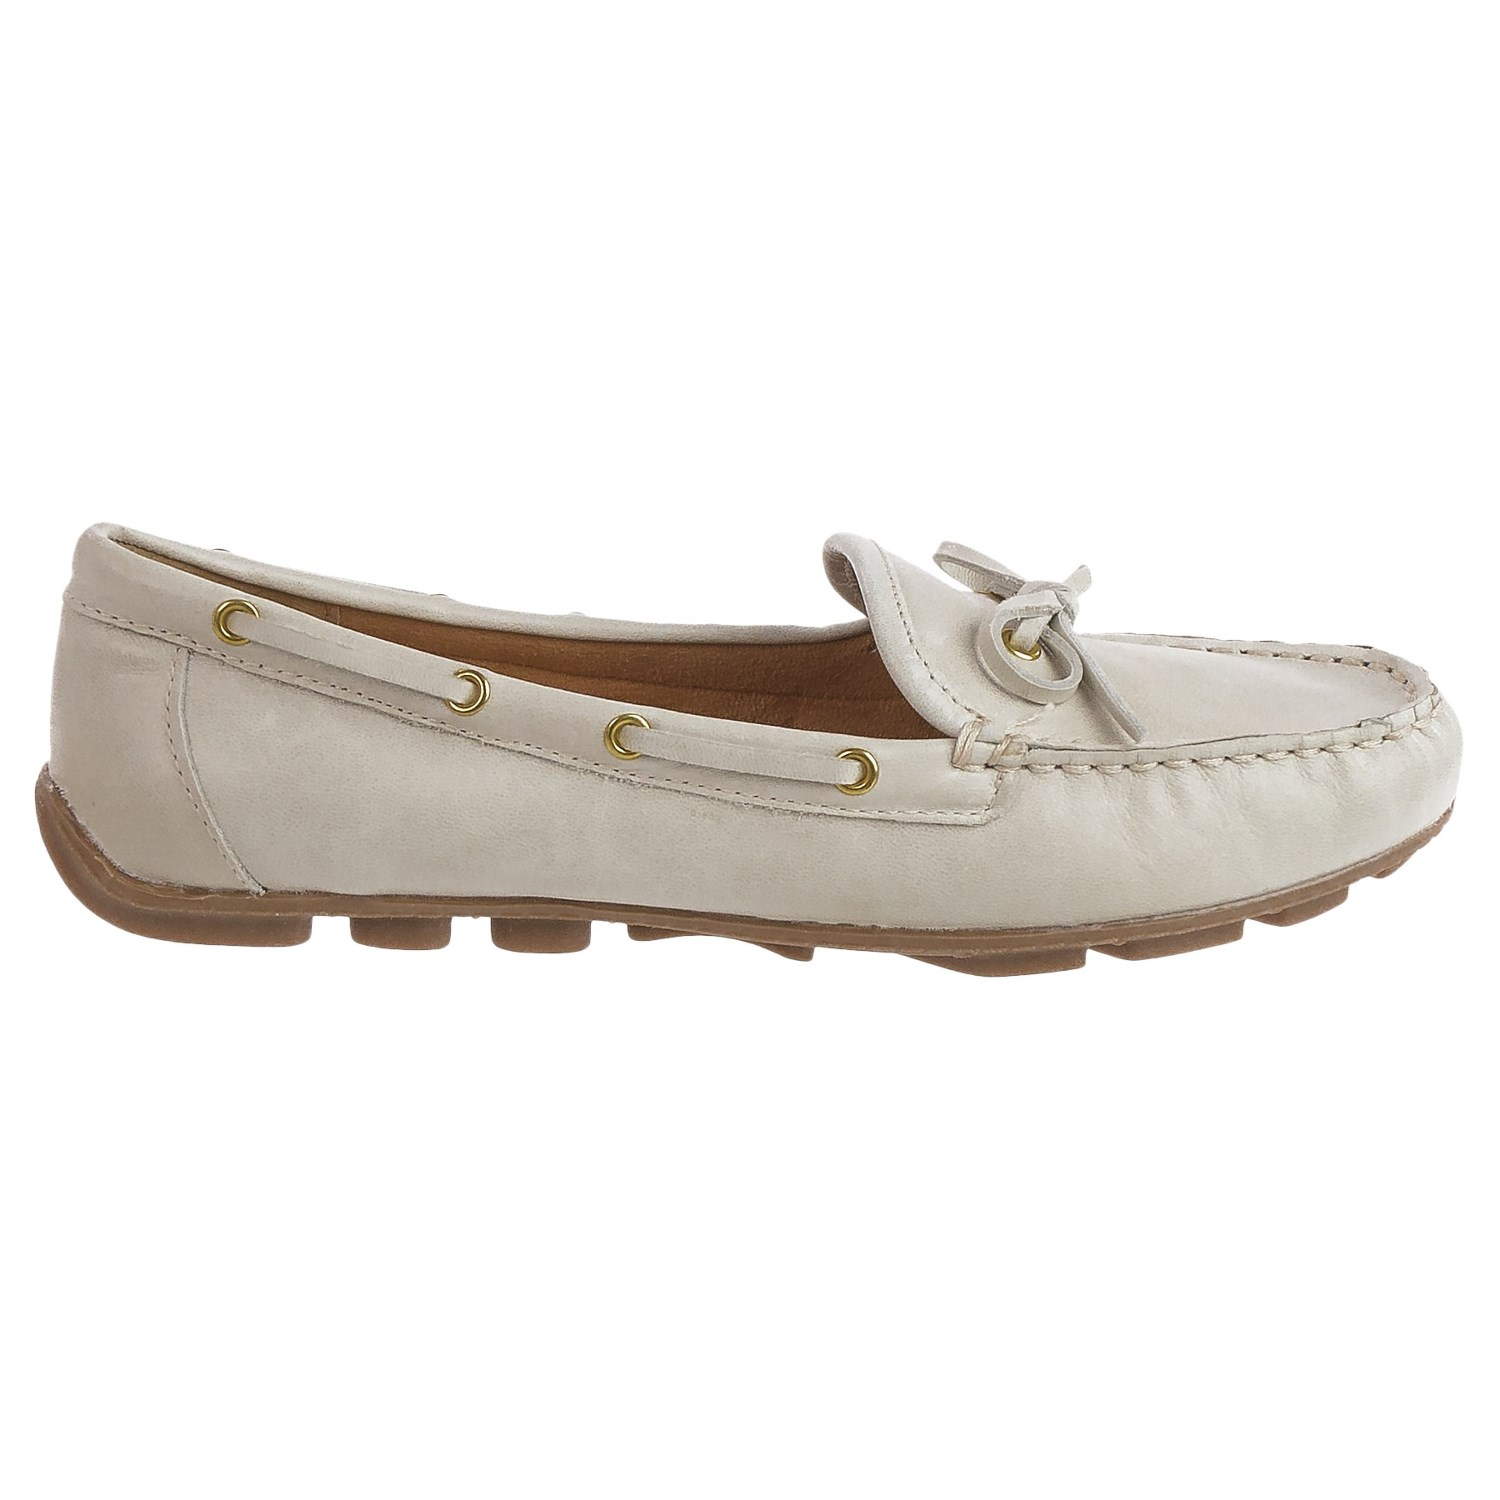 White Mountain Shoes At Marshalls